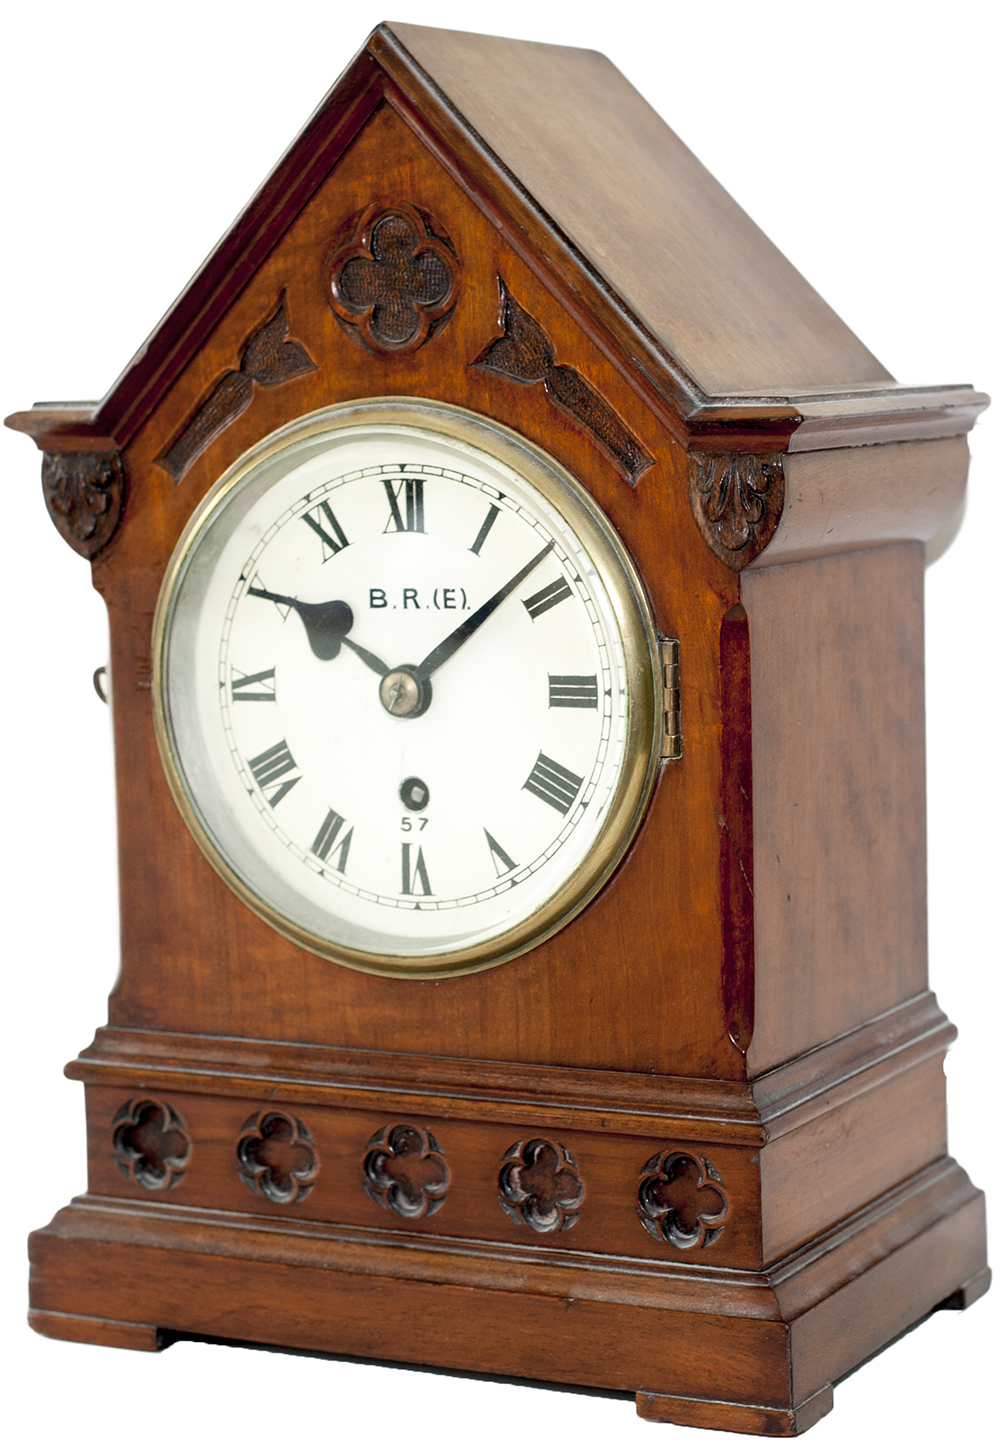 Lot 133 - Great Eastern Railway 6inch Mahogany cased Fusee Bracket clock manufactured for the G.E.R. by